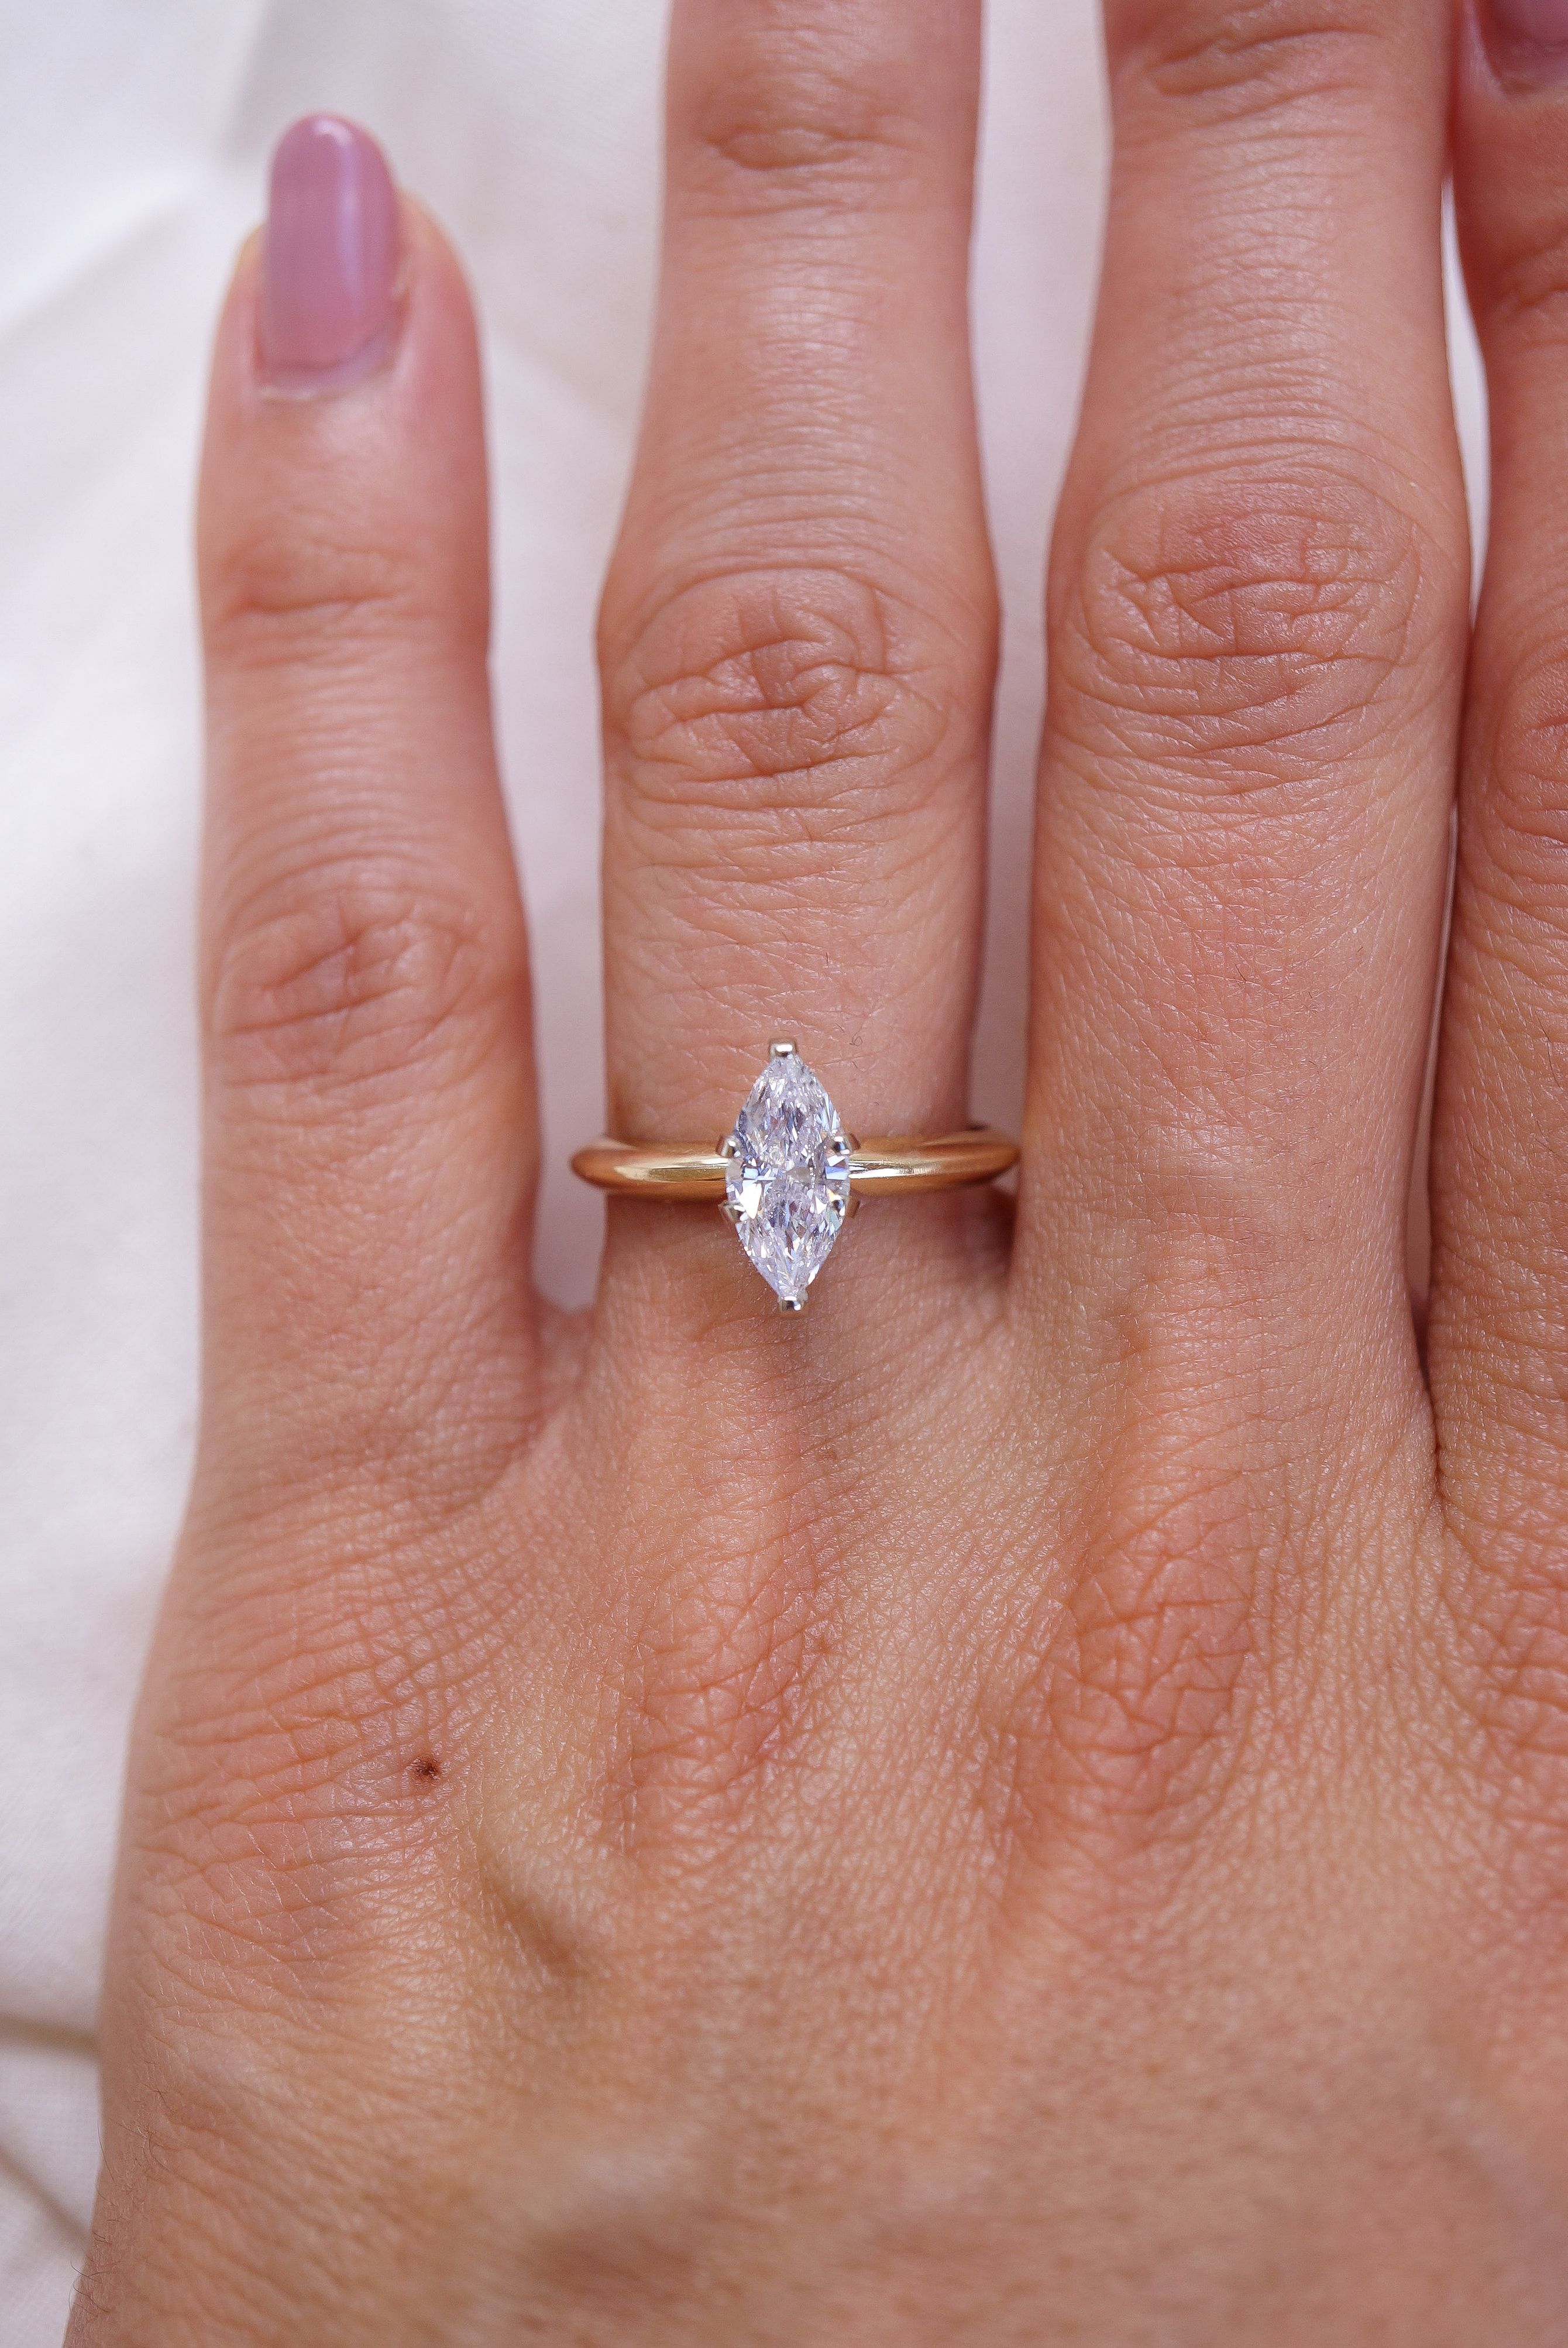 Marquise Diamond Solitaire Ring In 14k Yellow Gold Dainty Marquise Diamond Ring Solitaire Diamond Ring Minimalist Engagement Ring Rose Engagement Ring Marquise Diamond Solitaire Ring Engagement Rings Marquise